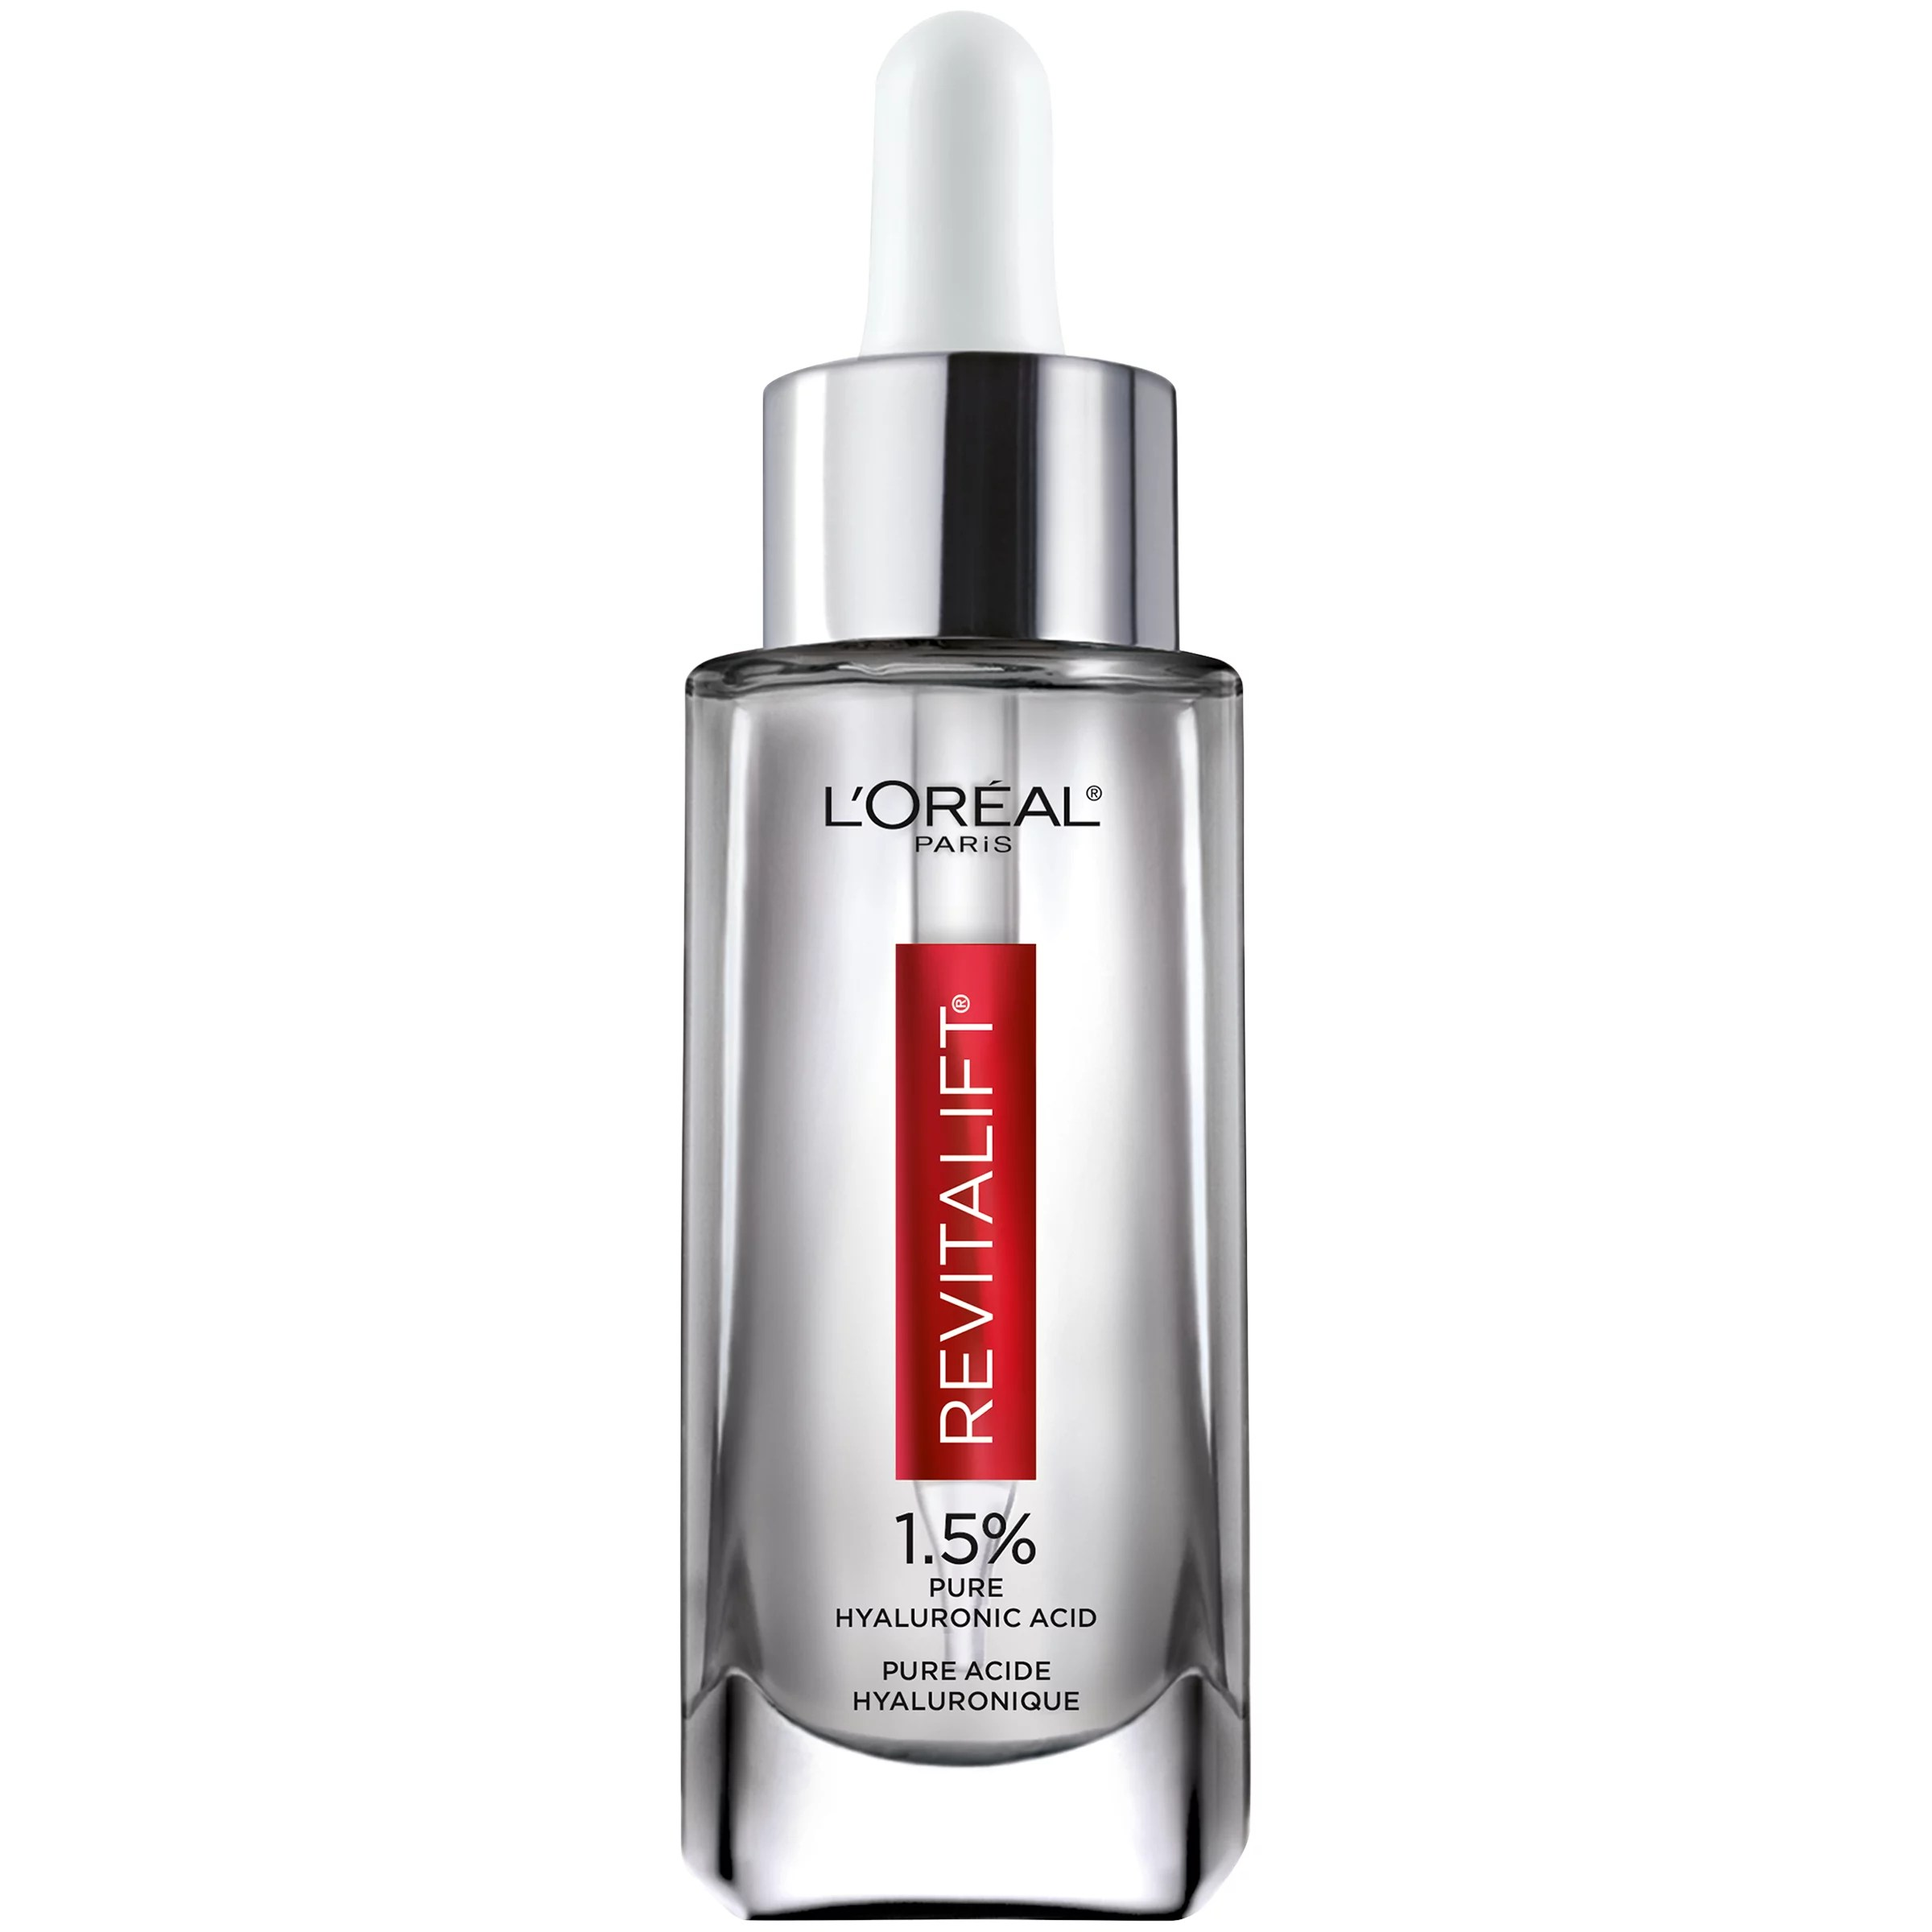 L'Oreal Paris Revitalift Derm Intensives Hyaluronic Acid Face Serum, 1 fl. oz.